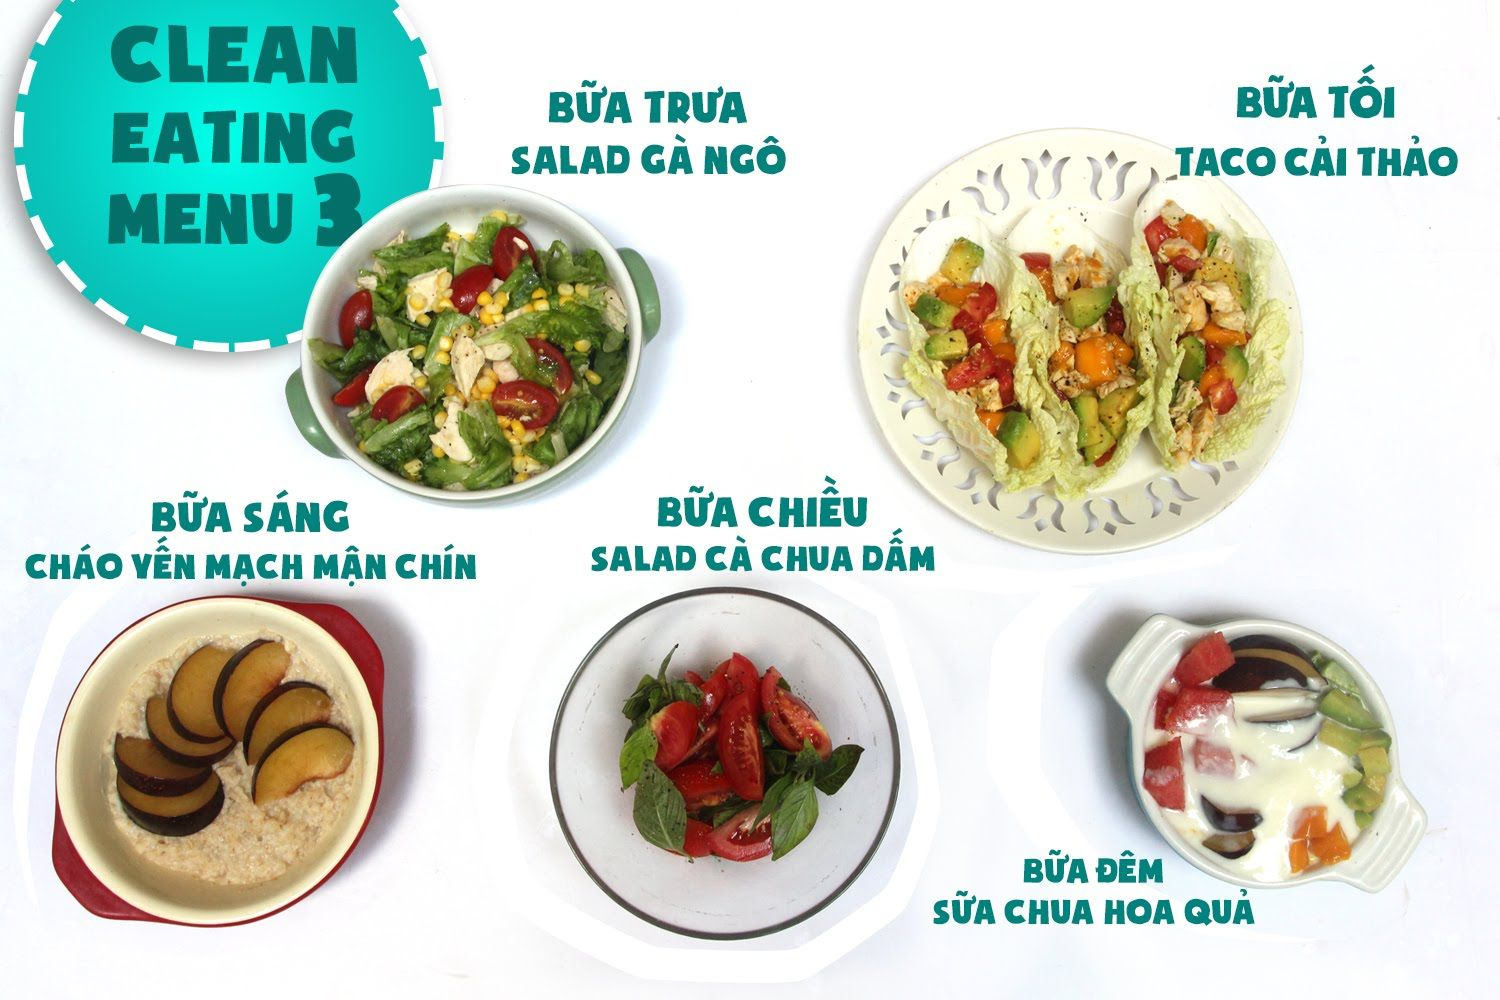 eat-clean-menu-ngay-3